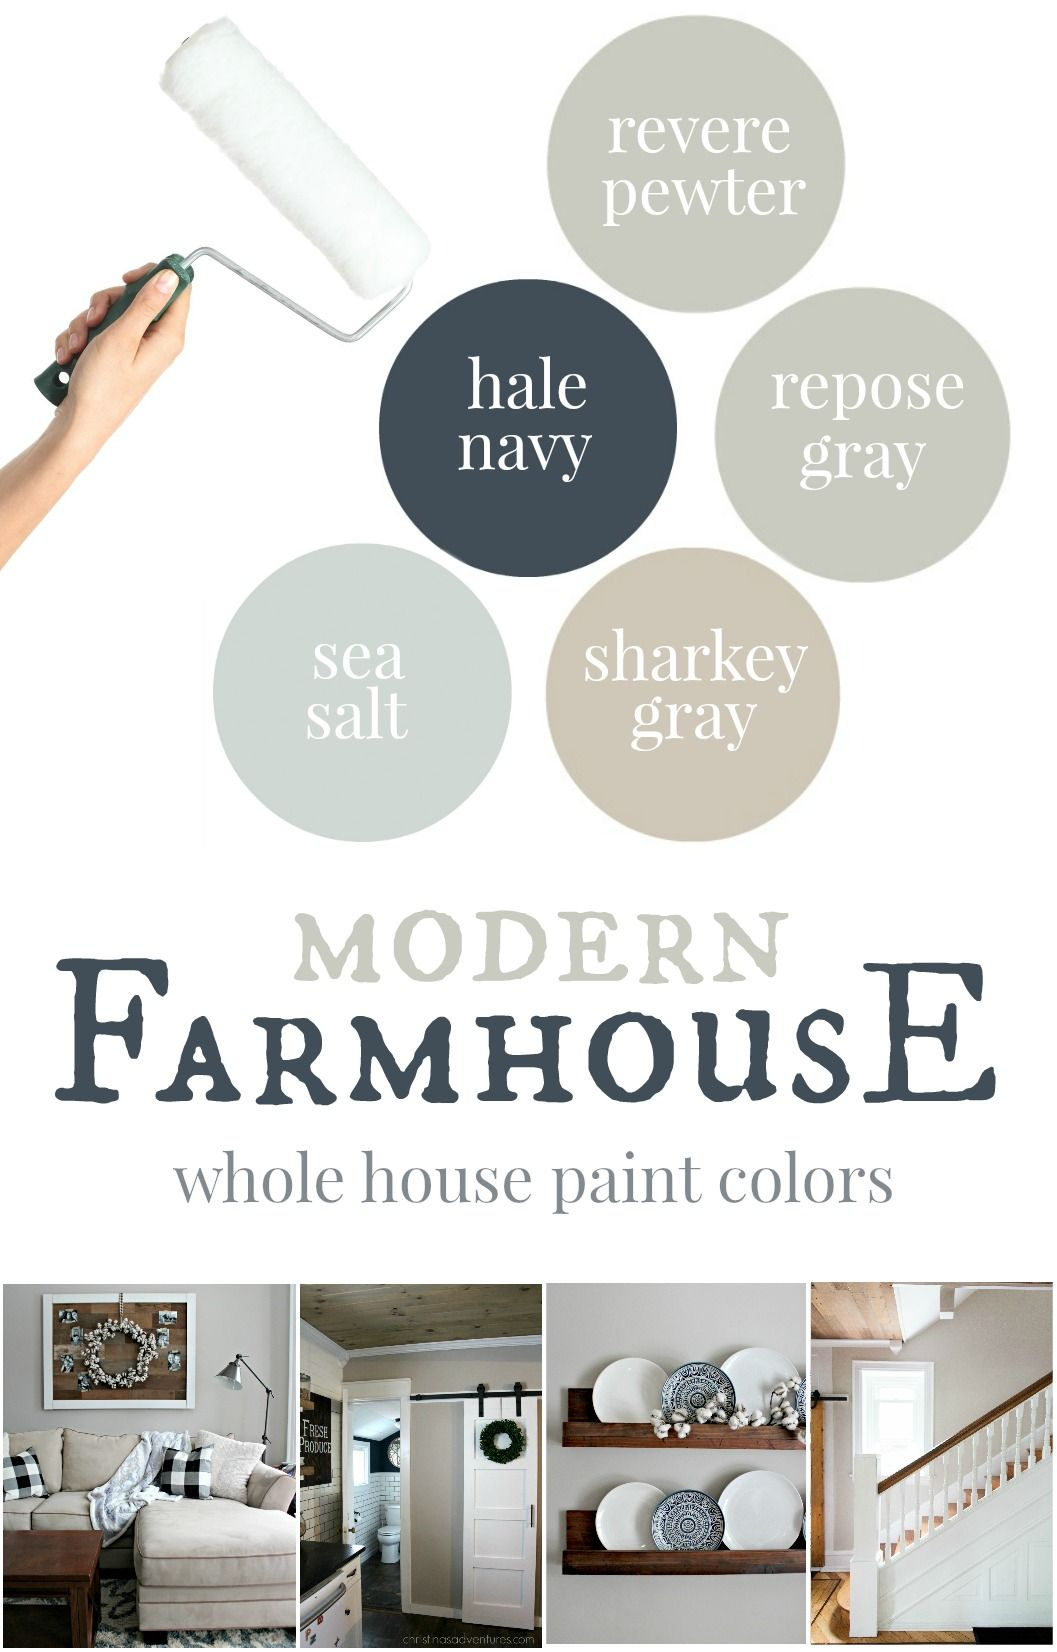 The Best Modern Farmhouse Paint Colors Includes Multiple Real Life Examples From A Fixer Upper Victorian That Has Been Renovated Beautifully